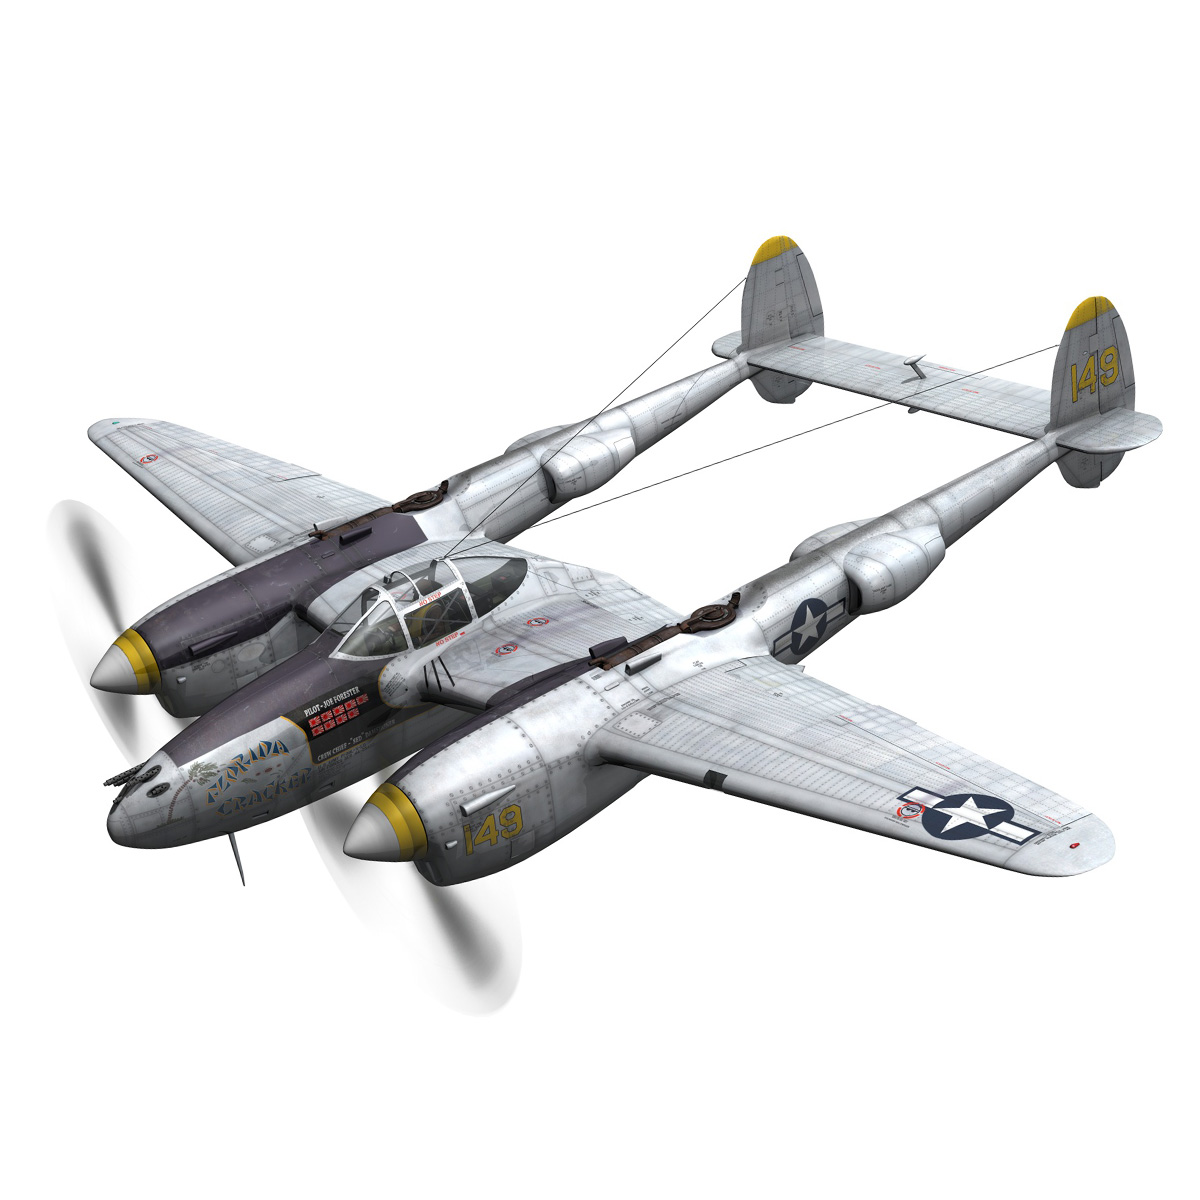 lockheed p-38 lightning – florida cracker 3d model fbx c4d lwo obj 279416